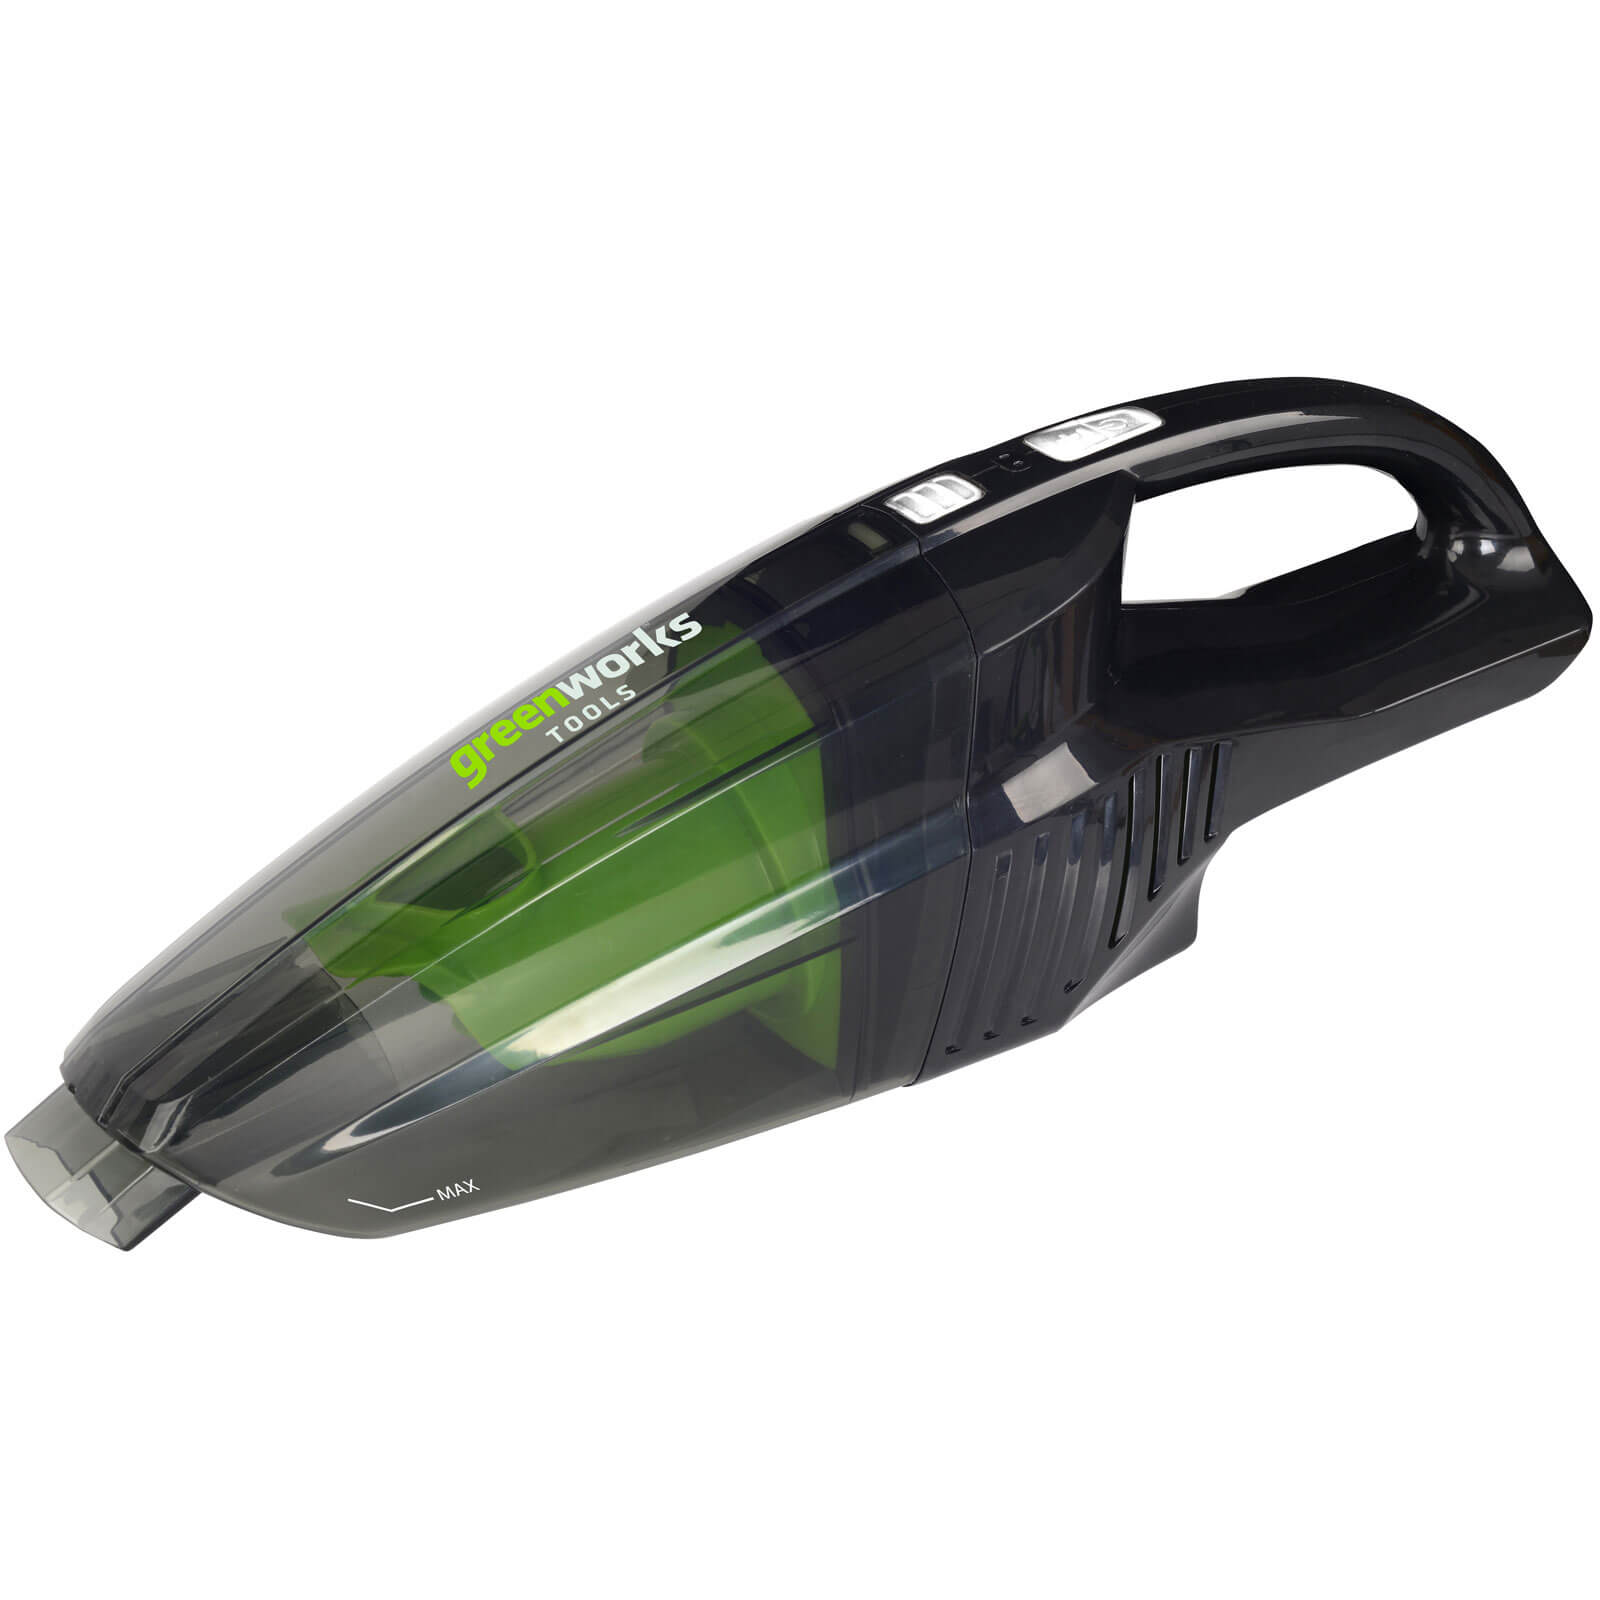 Greenworks G24HV 24v Cordless Wet & Dry Hand Held Vacuum Cleaner No Batteries No Charger